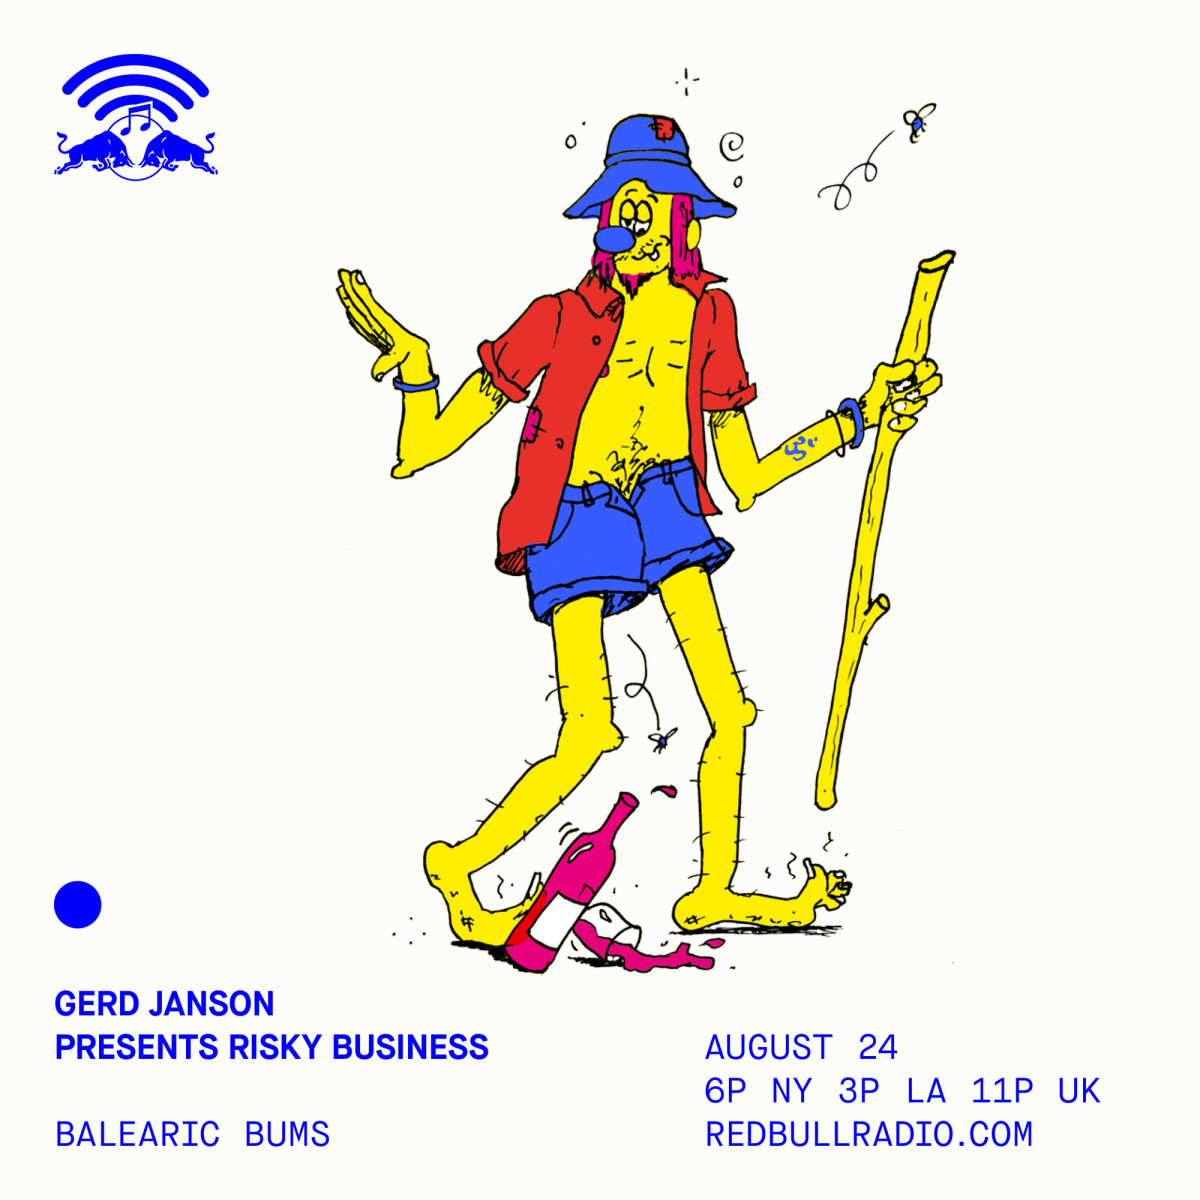 Dive Into Some Balearic Bliss With Gerd Janson - Thursday August 24th at 3 PM PST